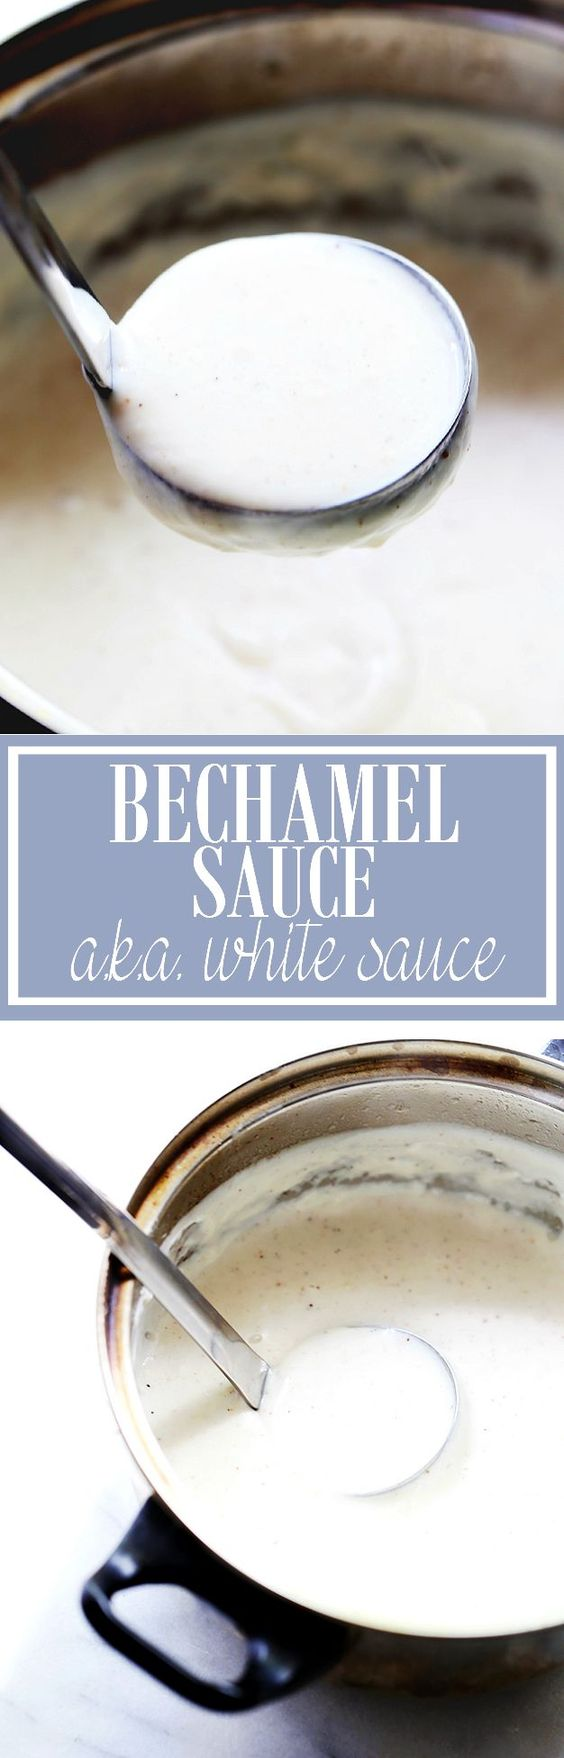 Béchamel sauce, also known as white sauce, is a classic French all-purpose sauce made from butter, flour, and milk.